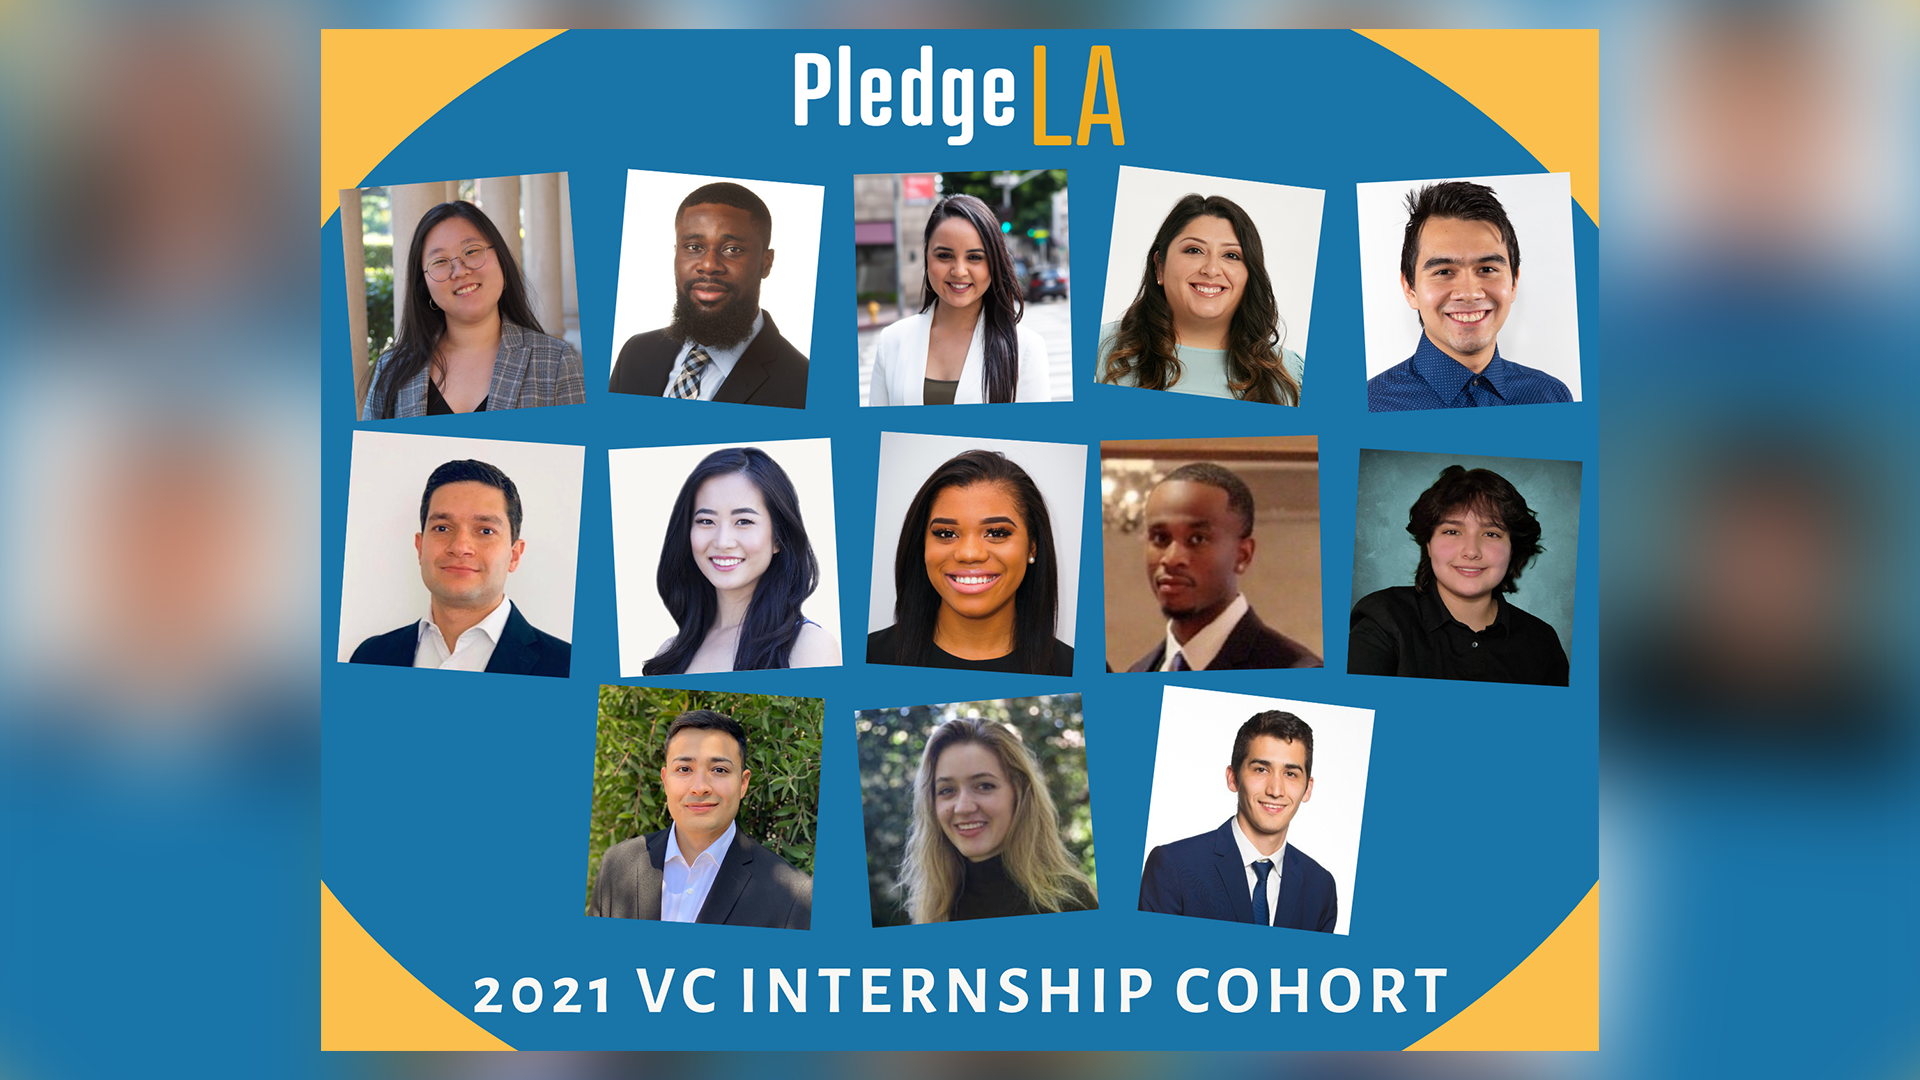 5 Lessons from my PledgeLA + HBCUvc Experience